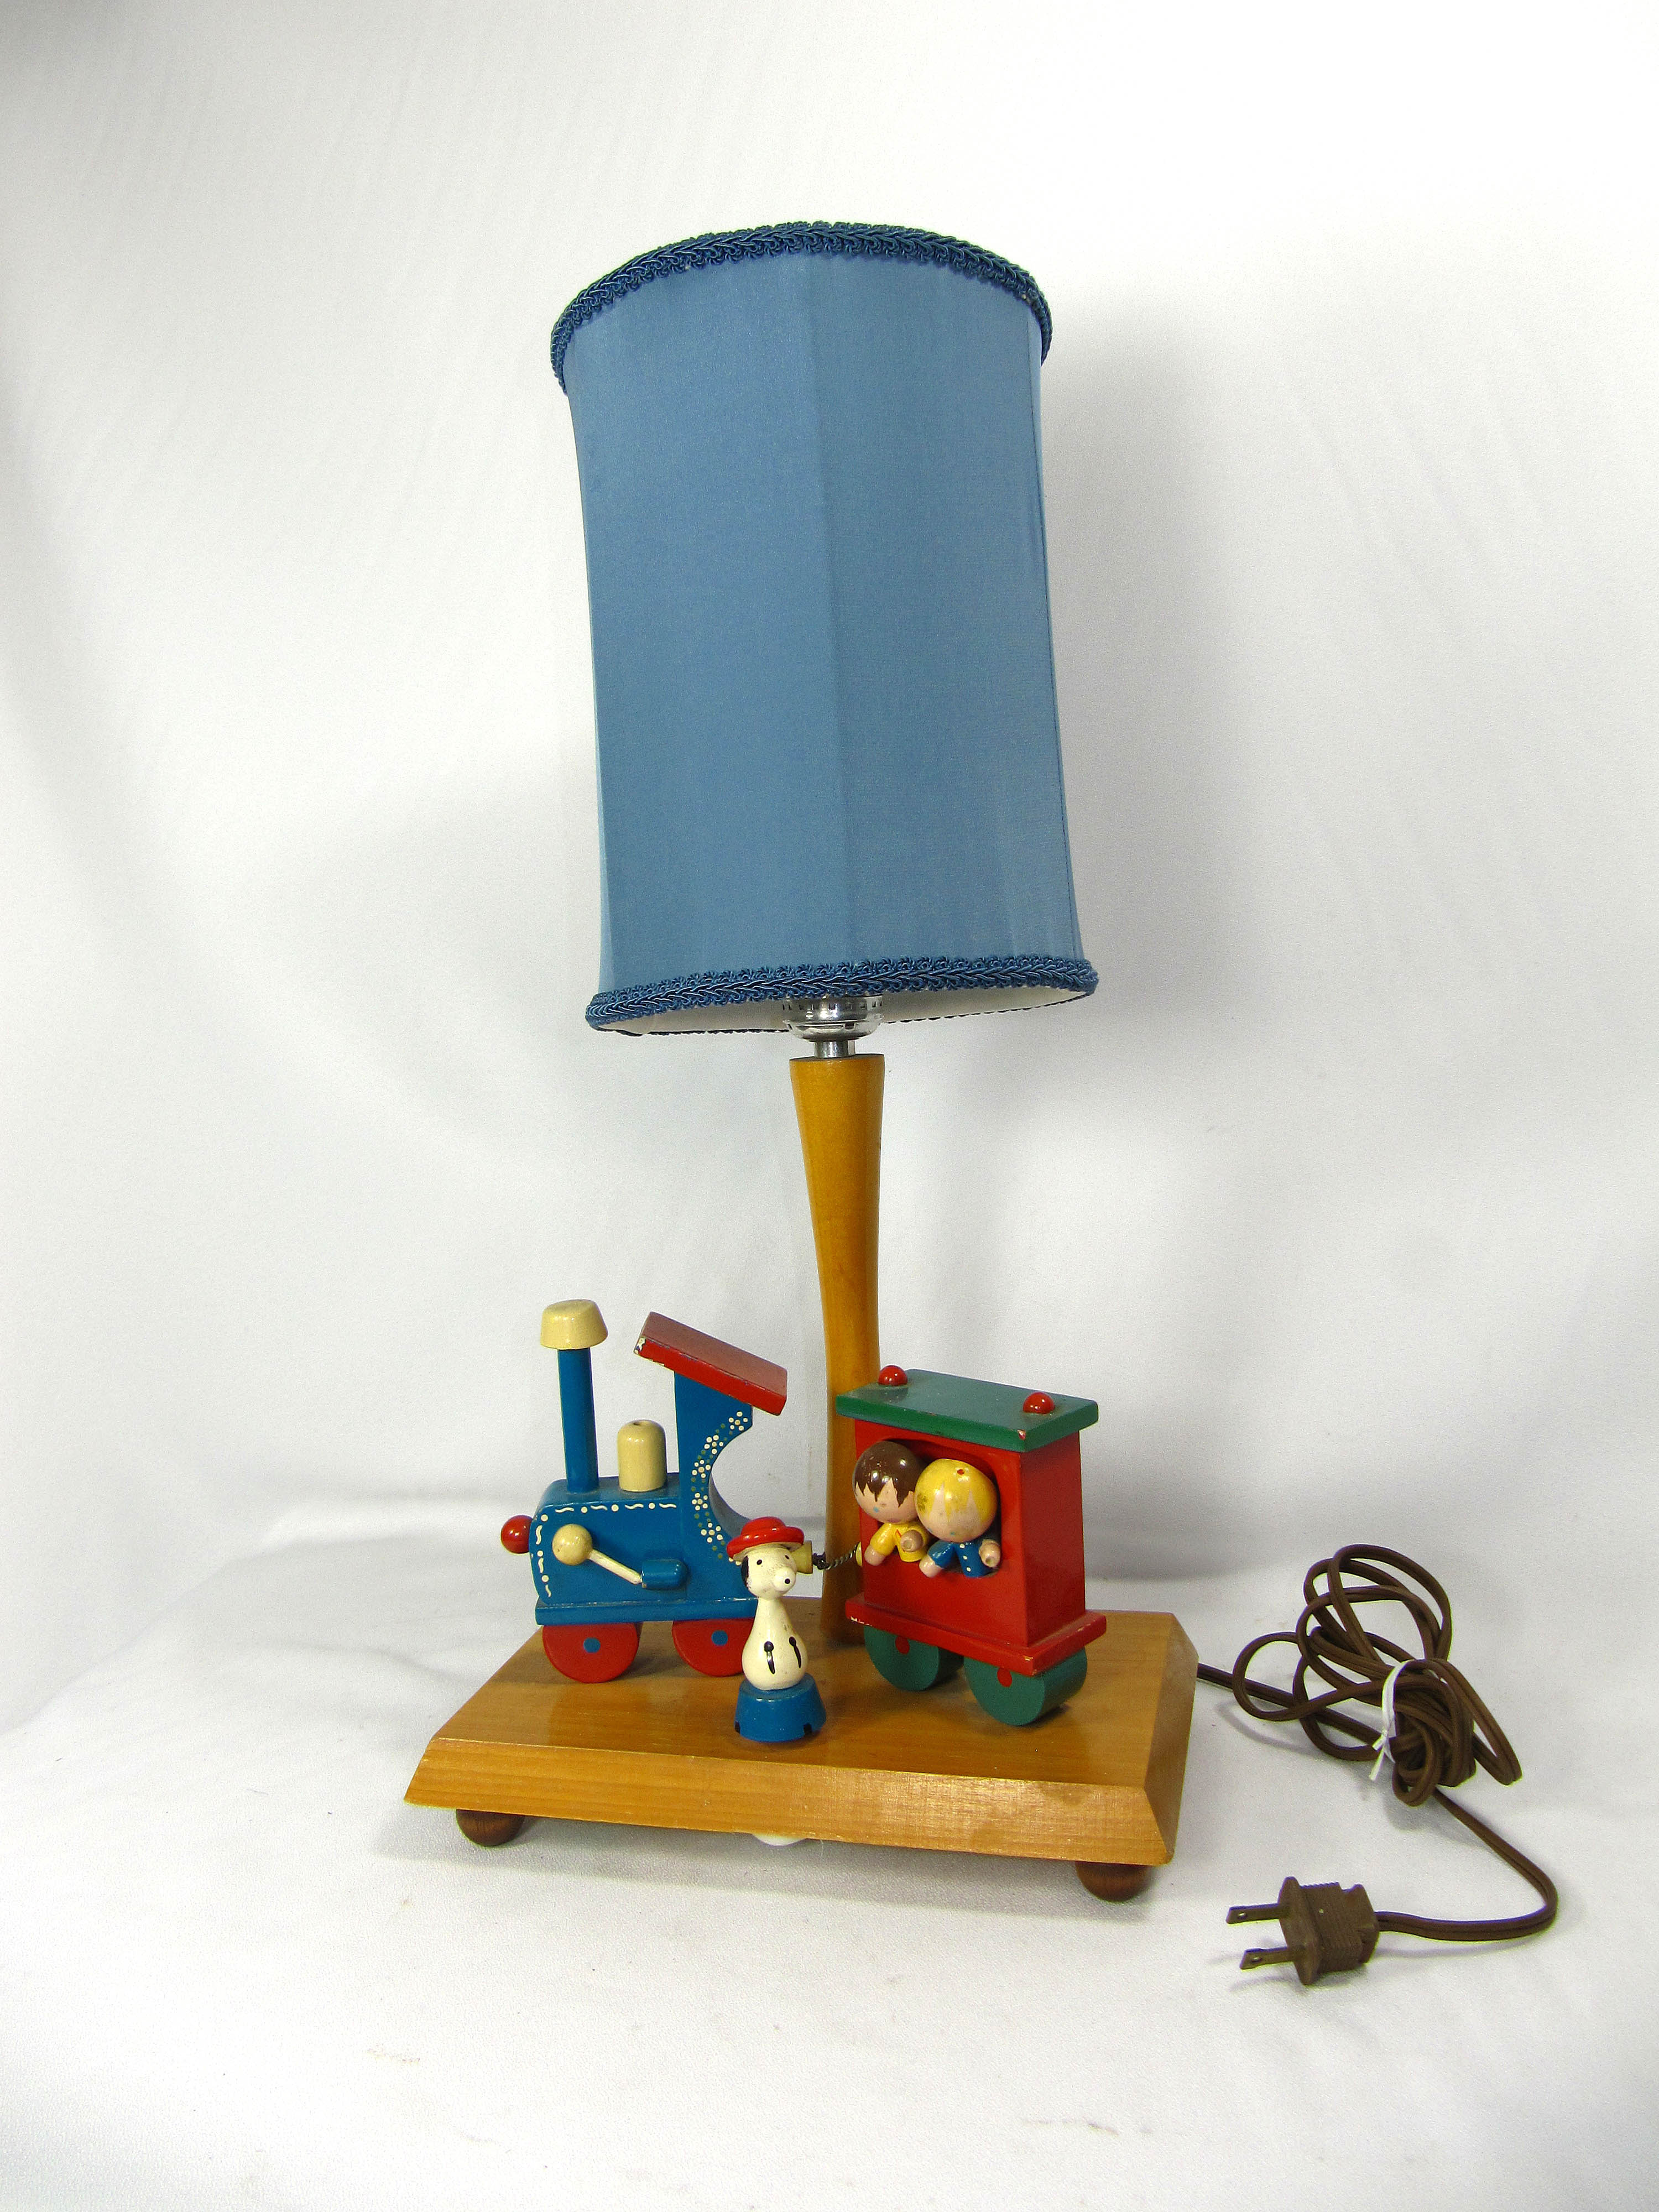 Judi S Lampshades Inc Specializing In Handmade One Of A